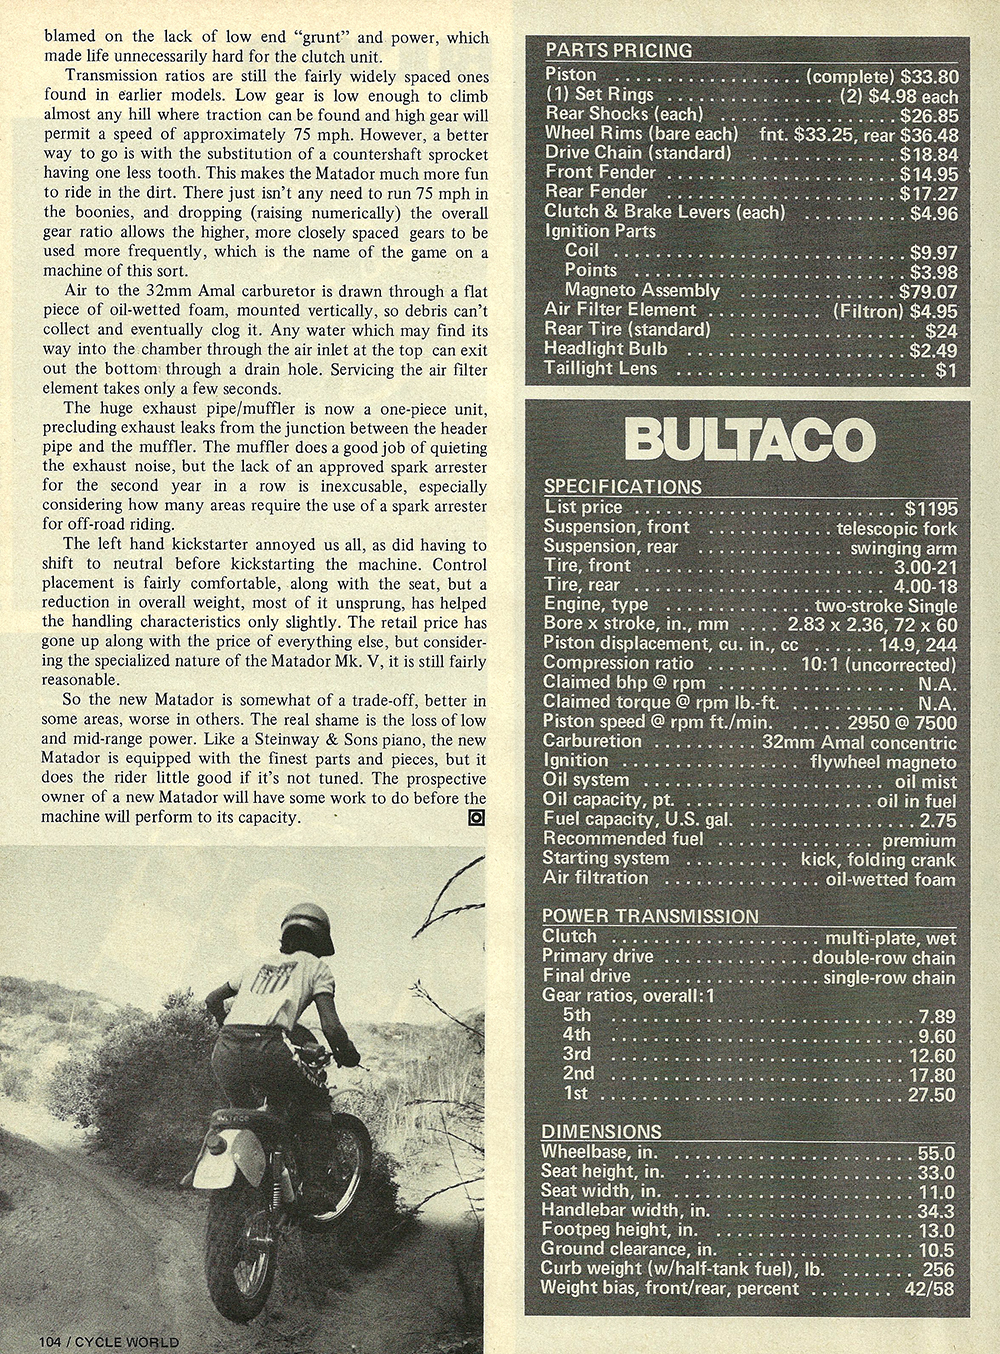 1974 Bultaco Matador 250 Mark 5 road test 05.jpg